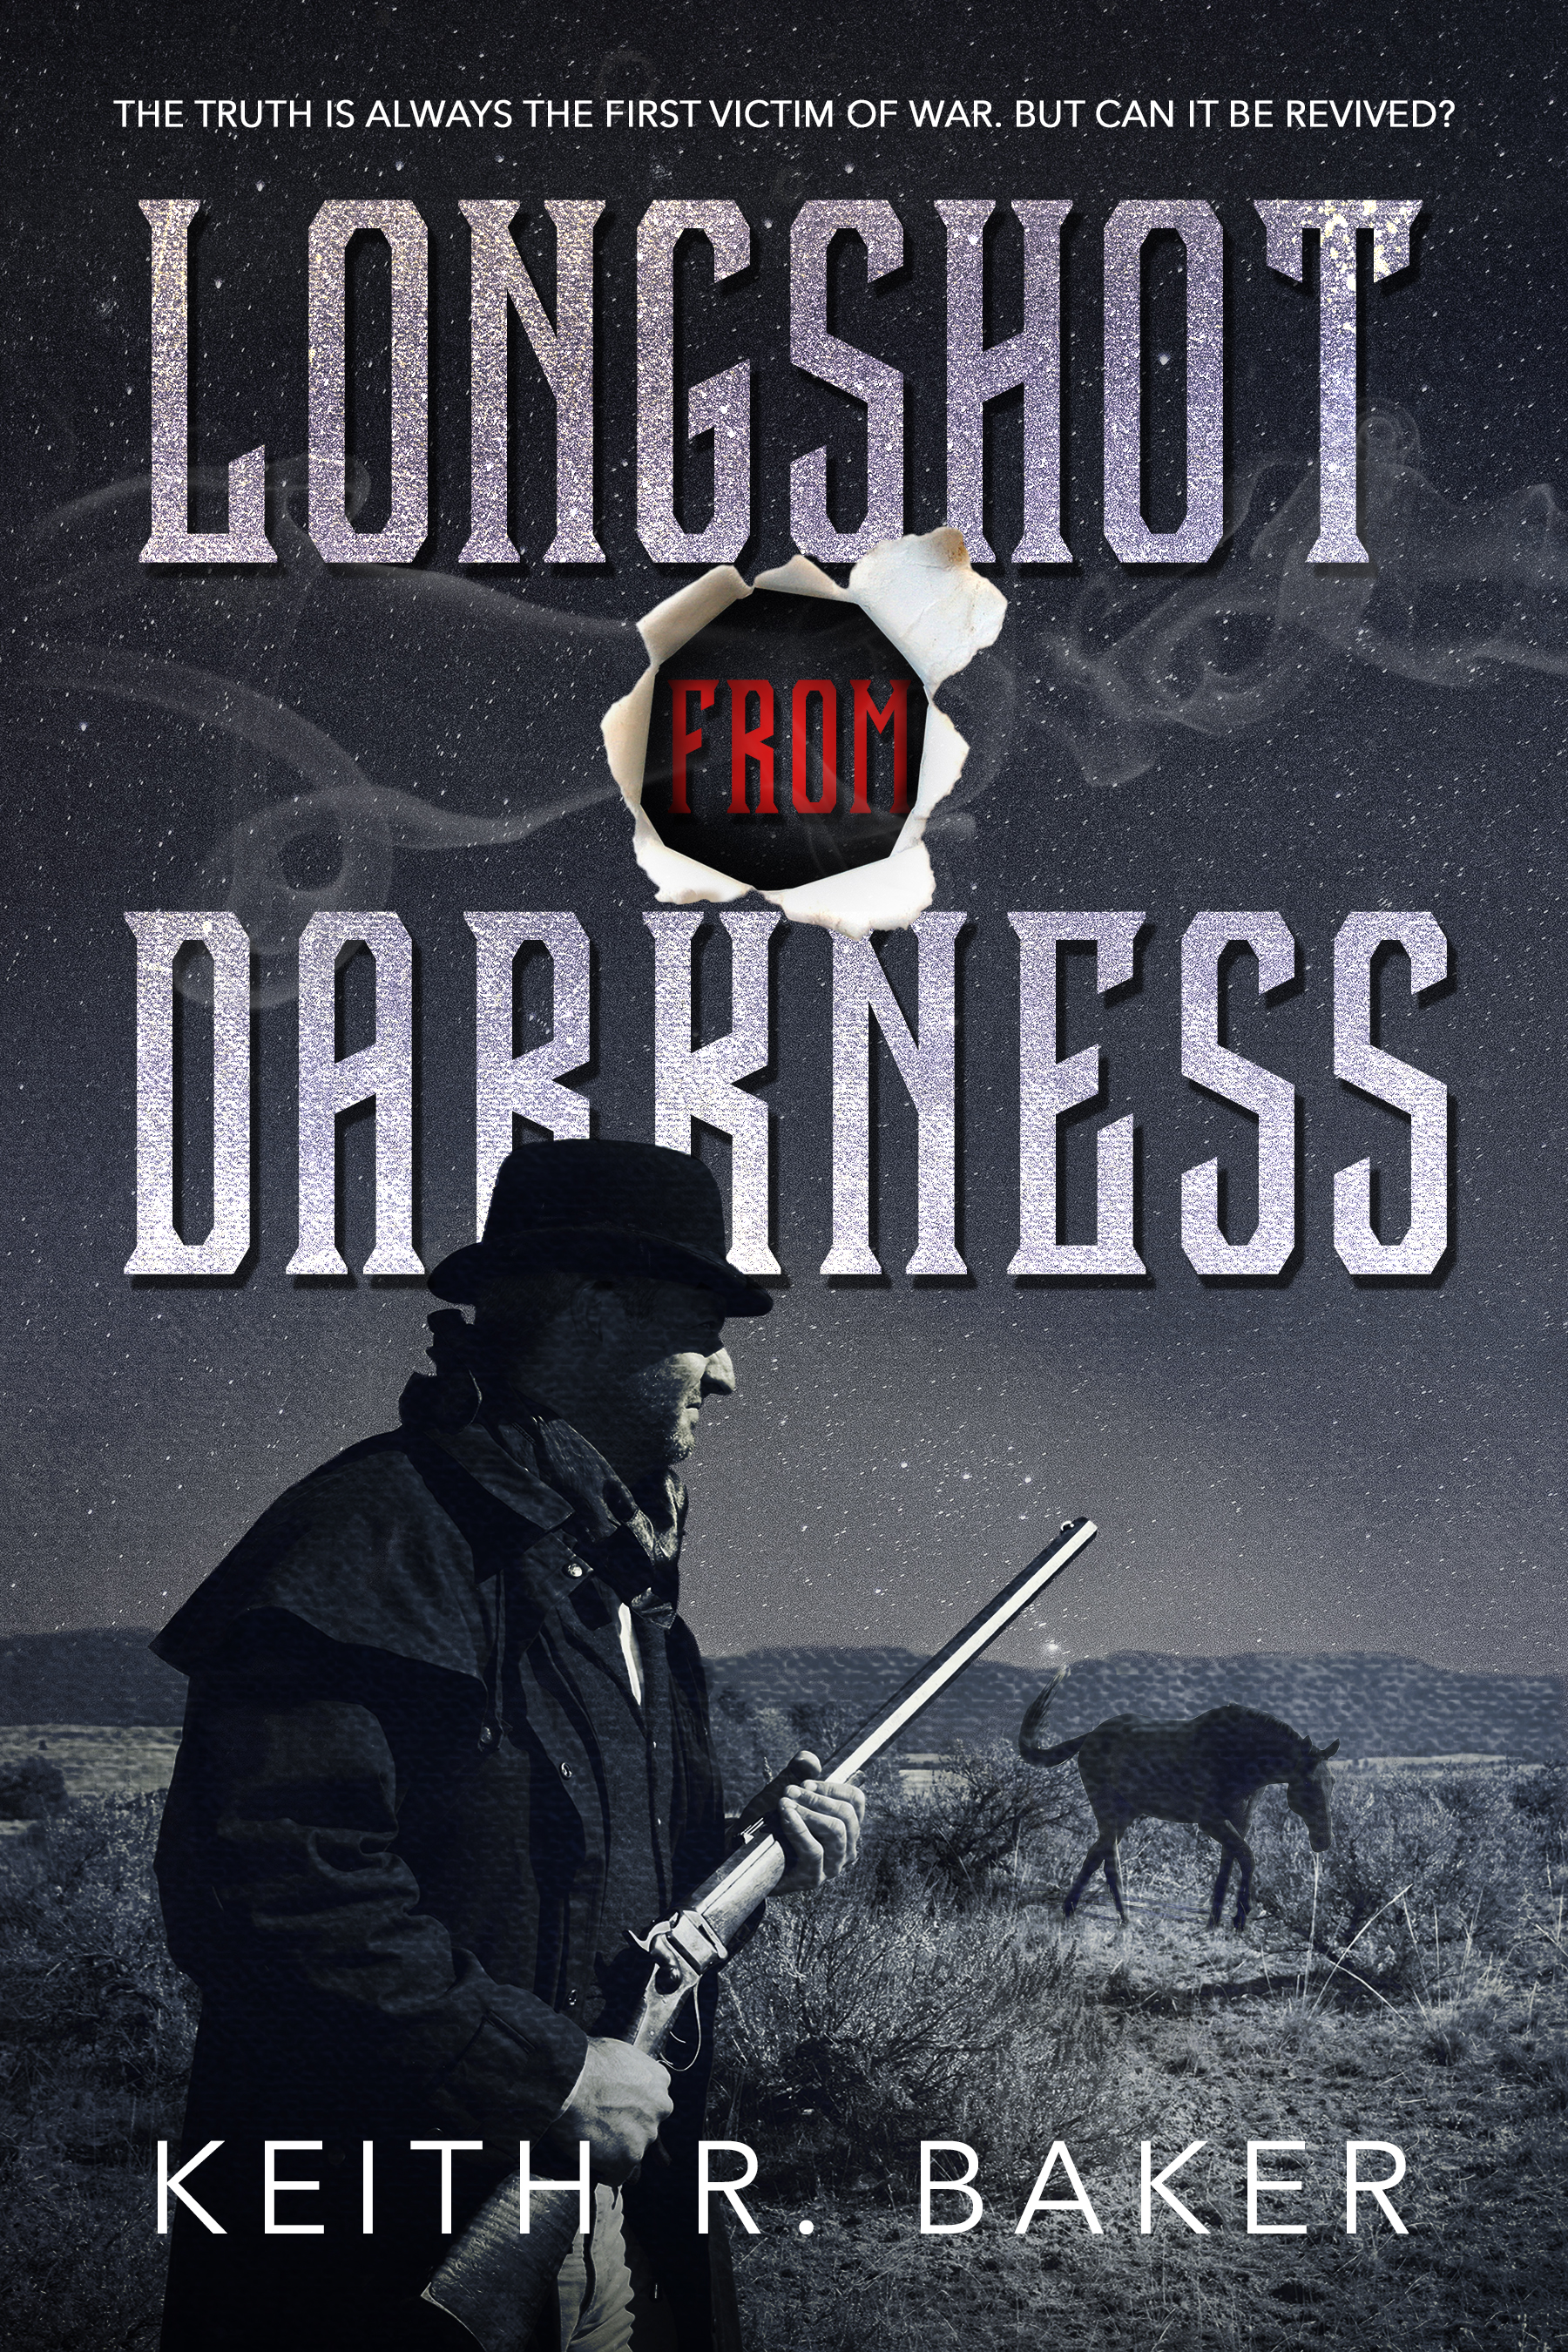 Longshot Into Darkness by Keith R. Baker